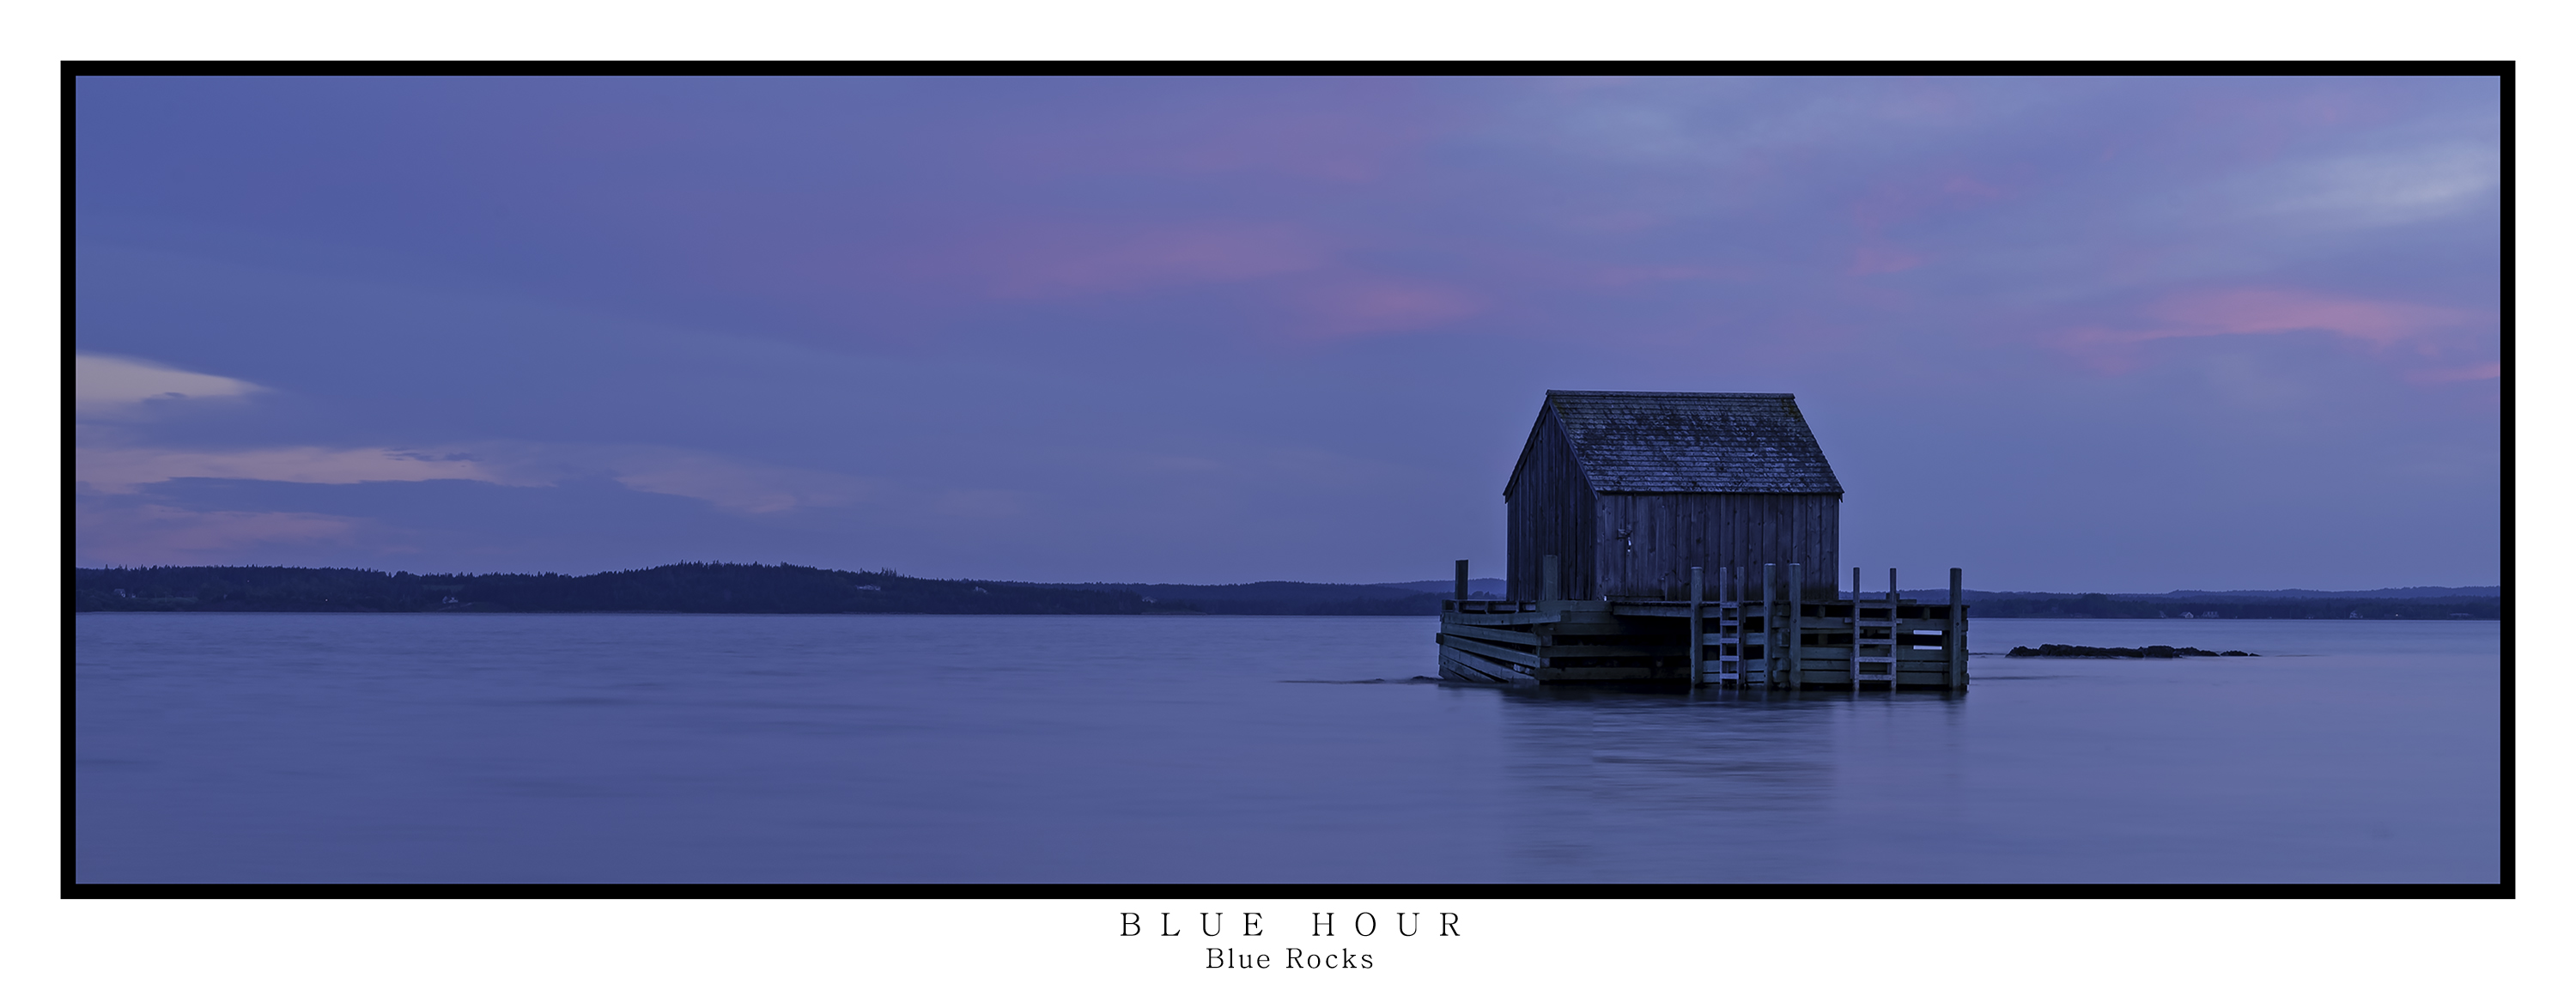 Panoramic landscape of a small old wooden fishing hut on stilts in the sea at high tide, taken at Blue Rocks, Nova Scotia at blue hour as the sun is setting and there is still a hint of pink in the clouds with a calm and flat sea